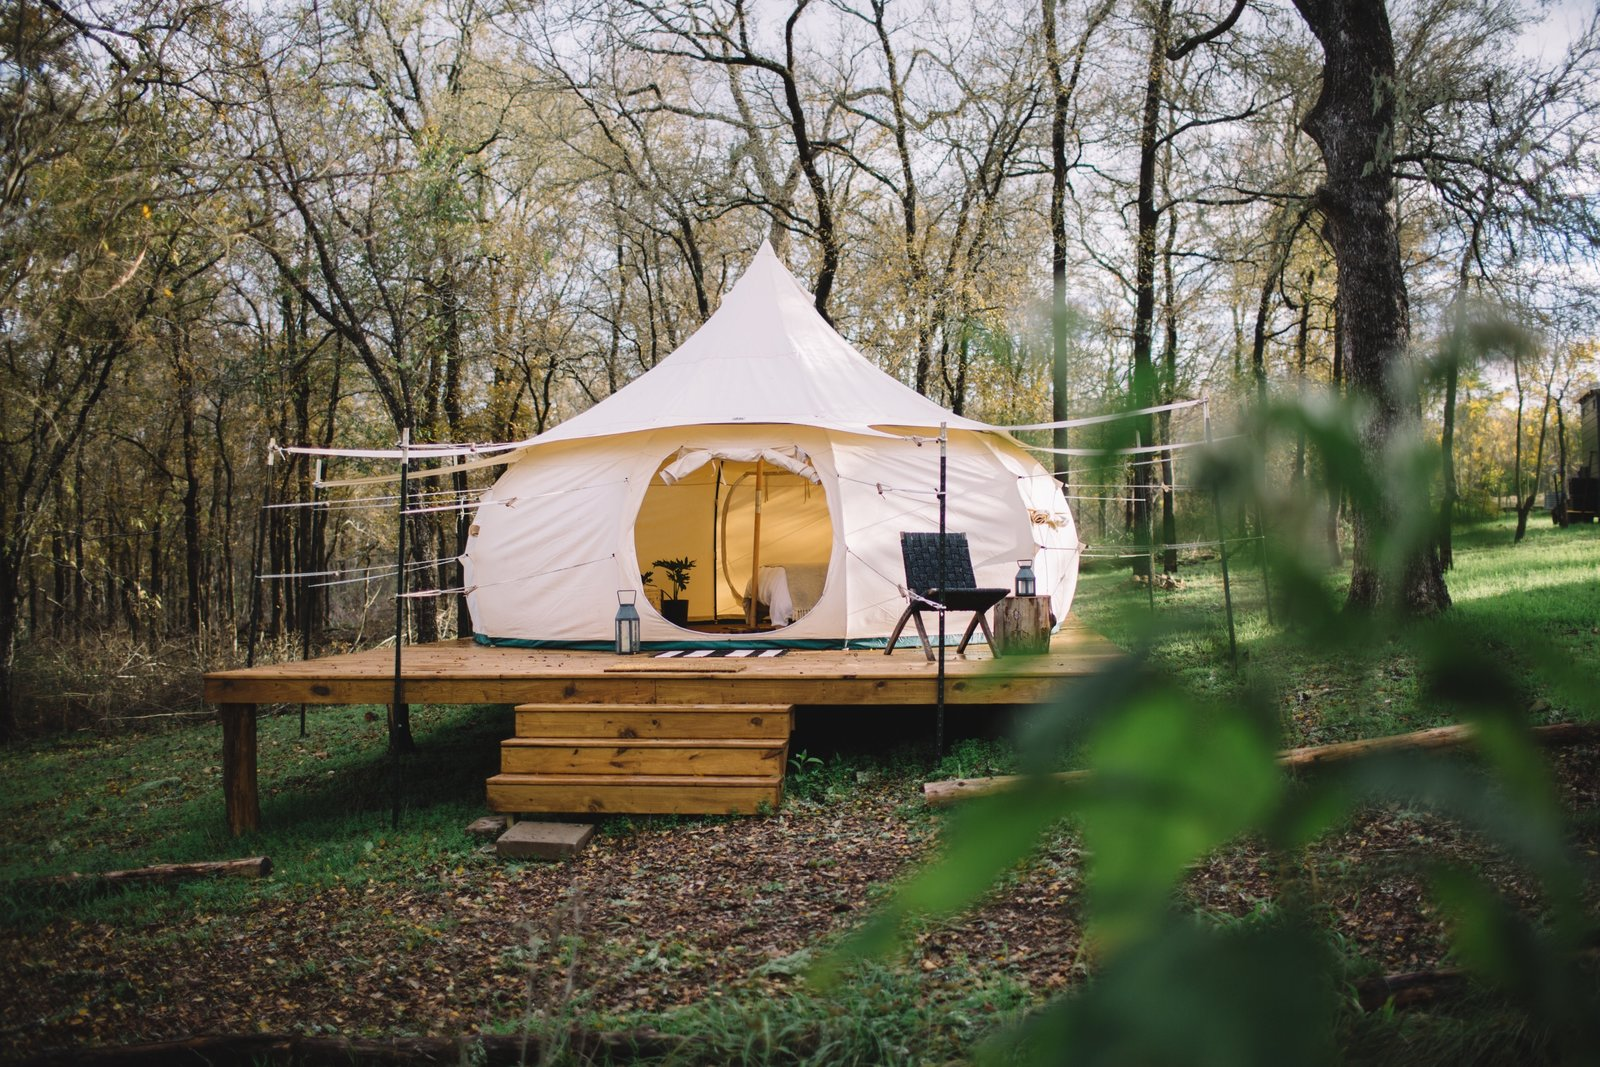 Exterior and Tent Building Type  Photo 1 of 8 in A Texas Camping Spot Complete With Yurts and Miniature Donkeys from Green Acres Yurt